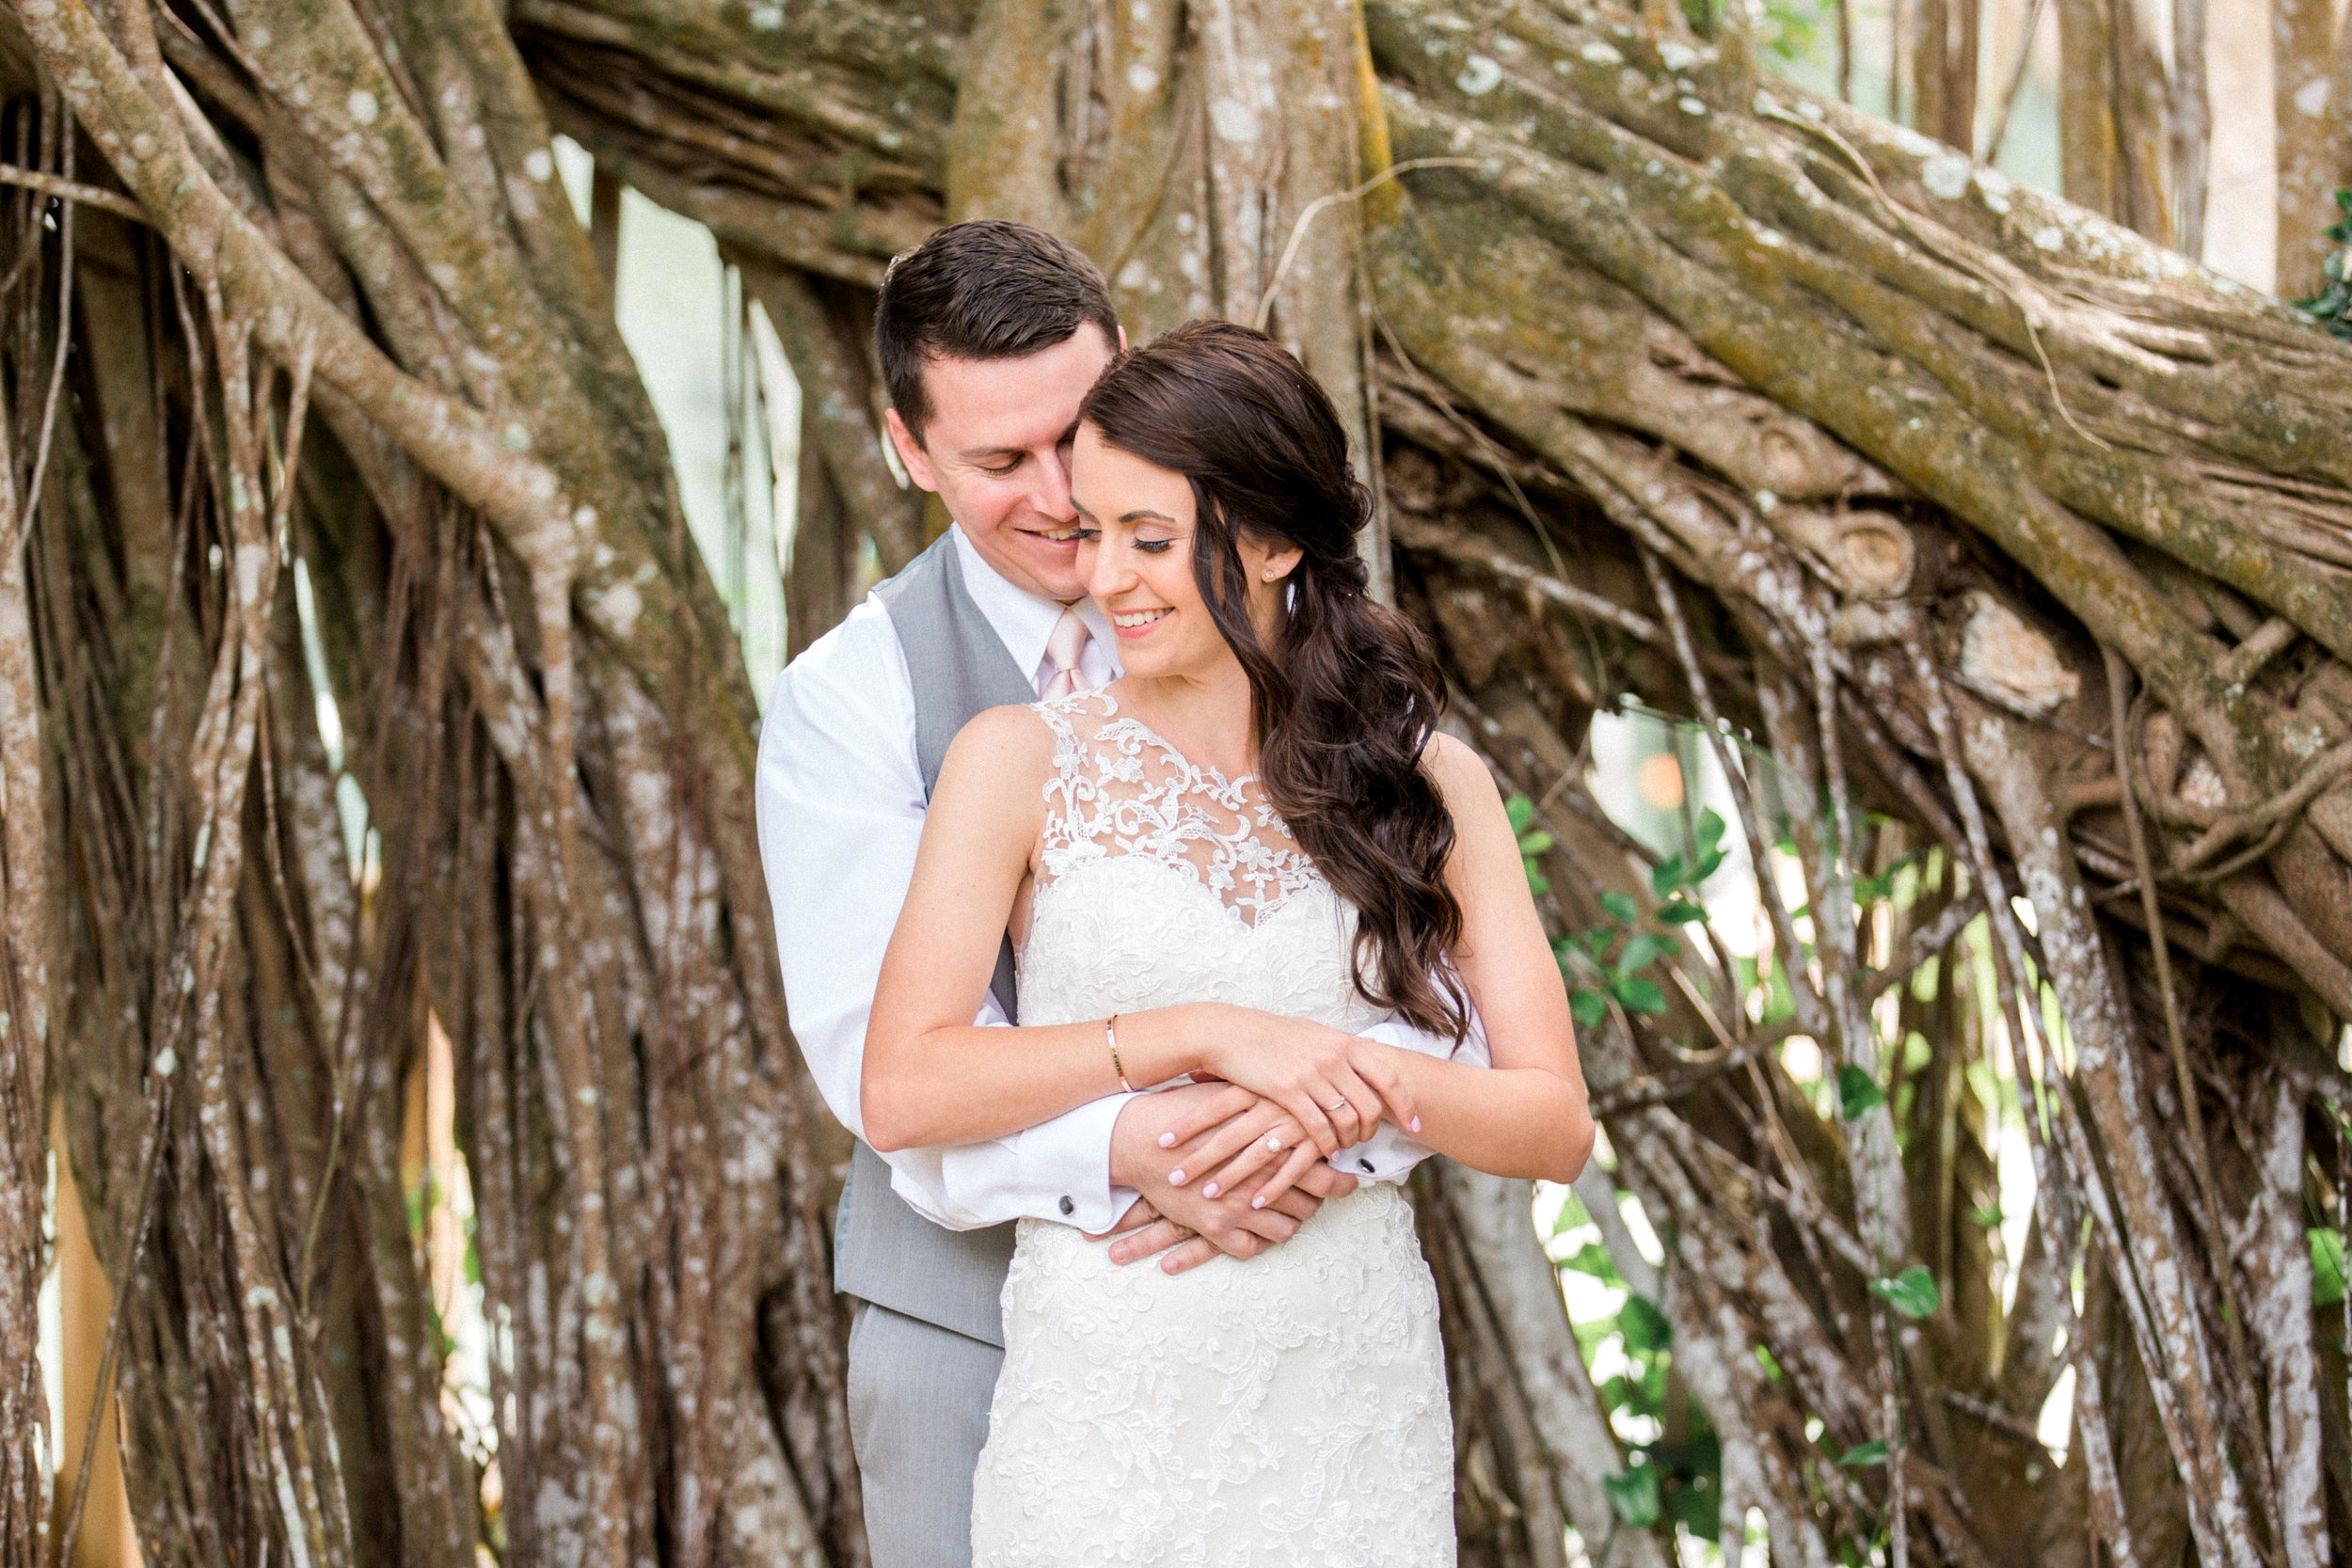 Banyan Estate High End Wedding